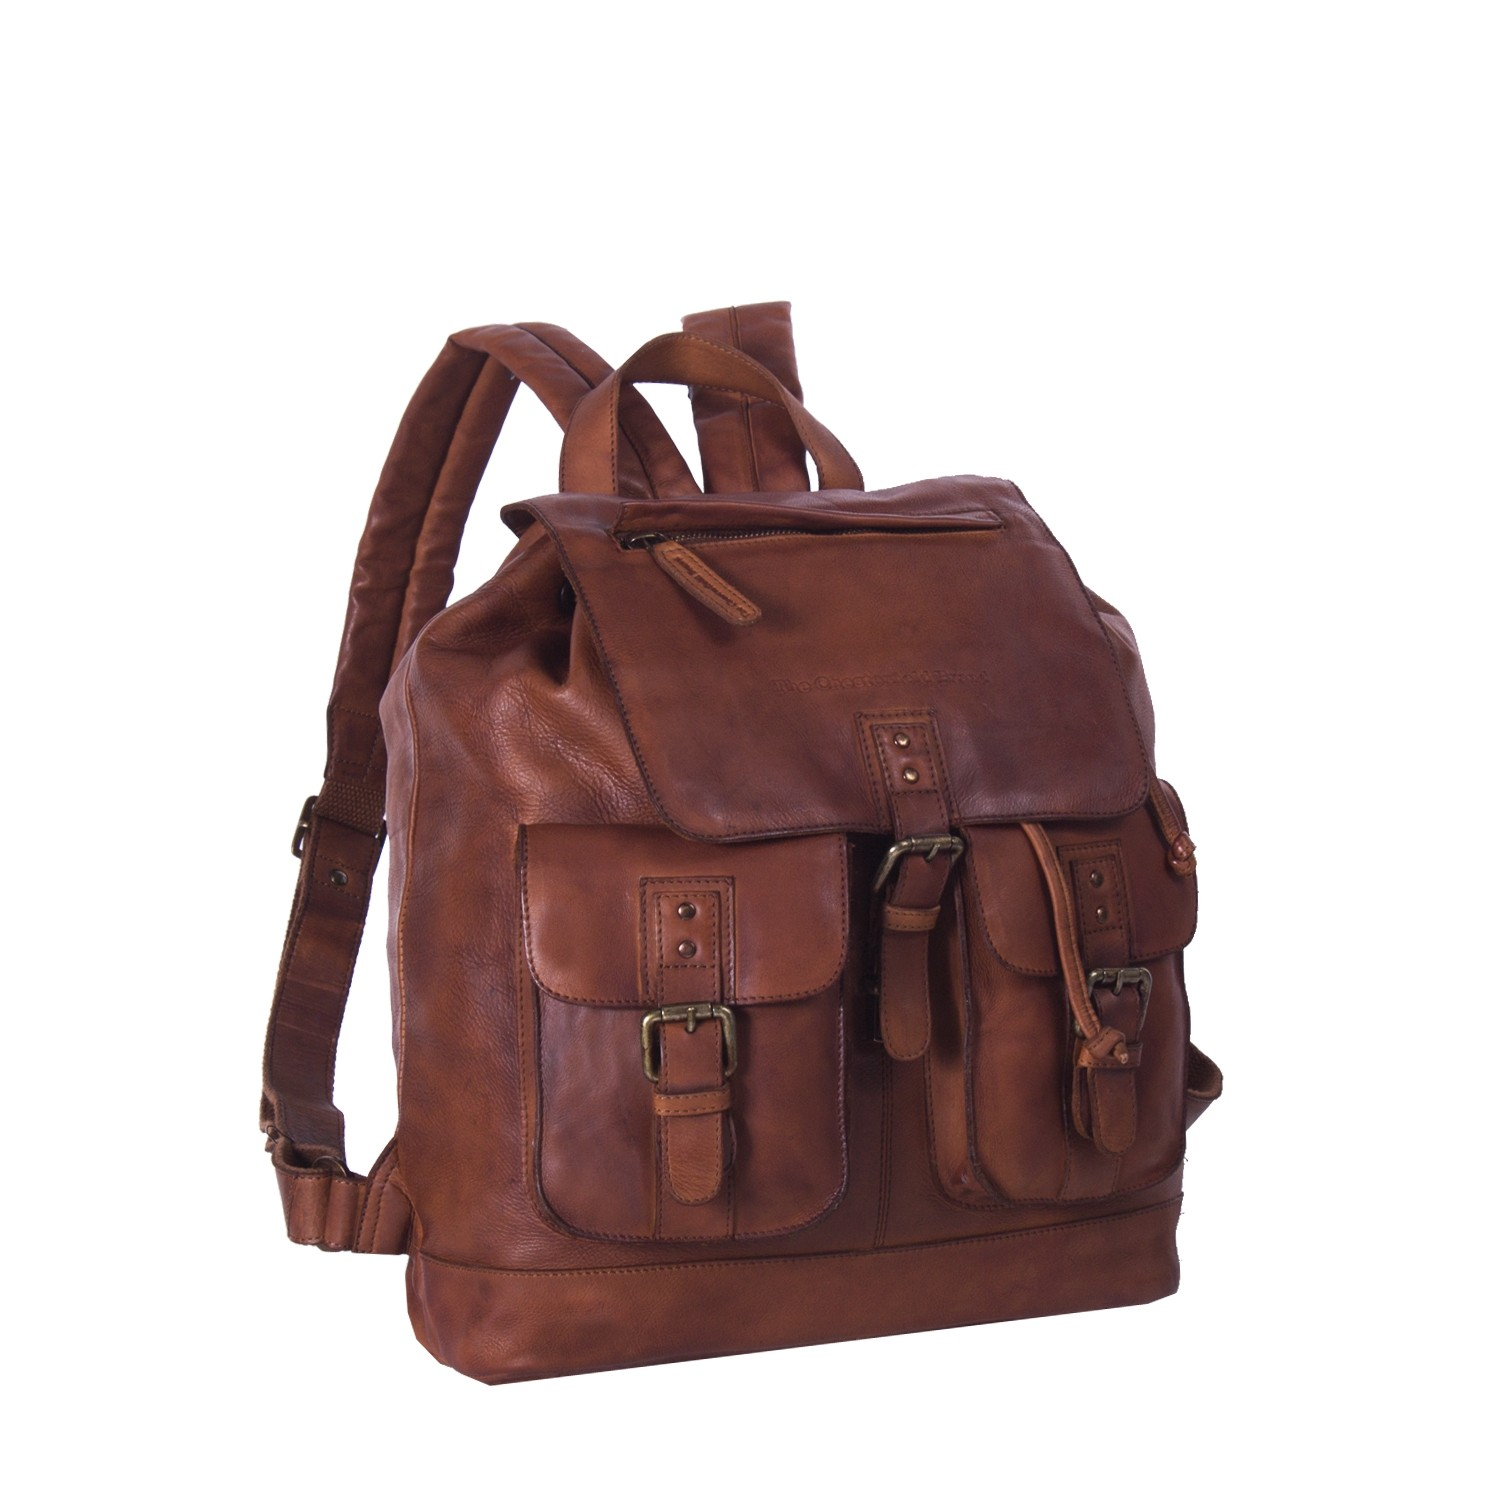 Image de Chesterfield Leather Backpack Black Label Cognac Laney